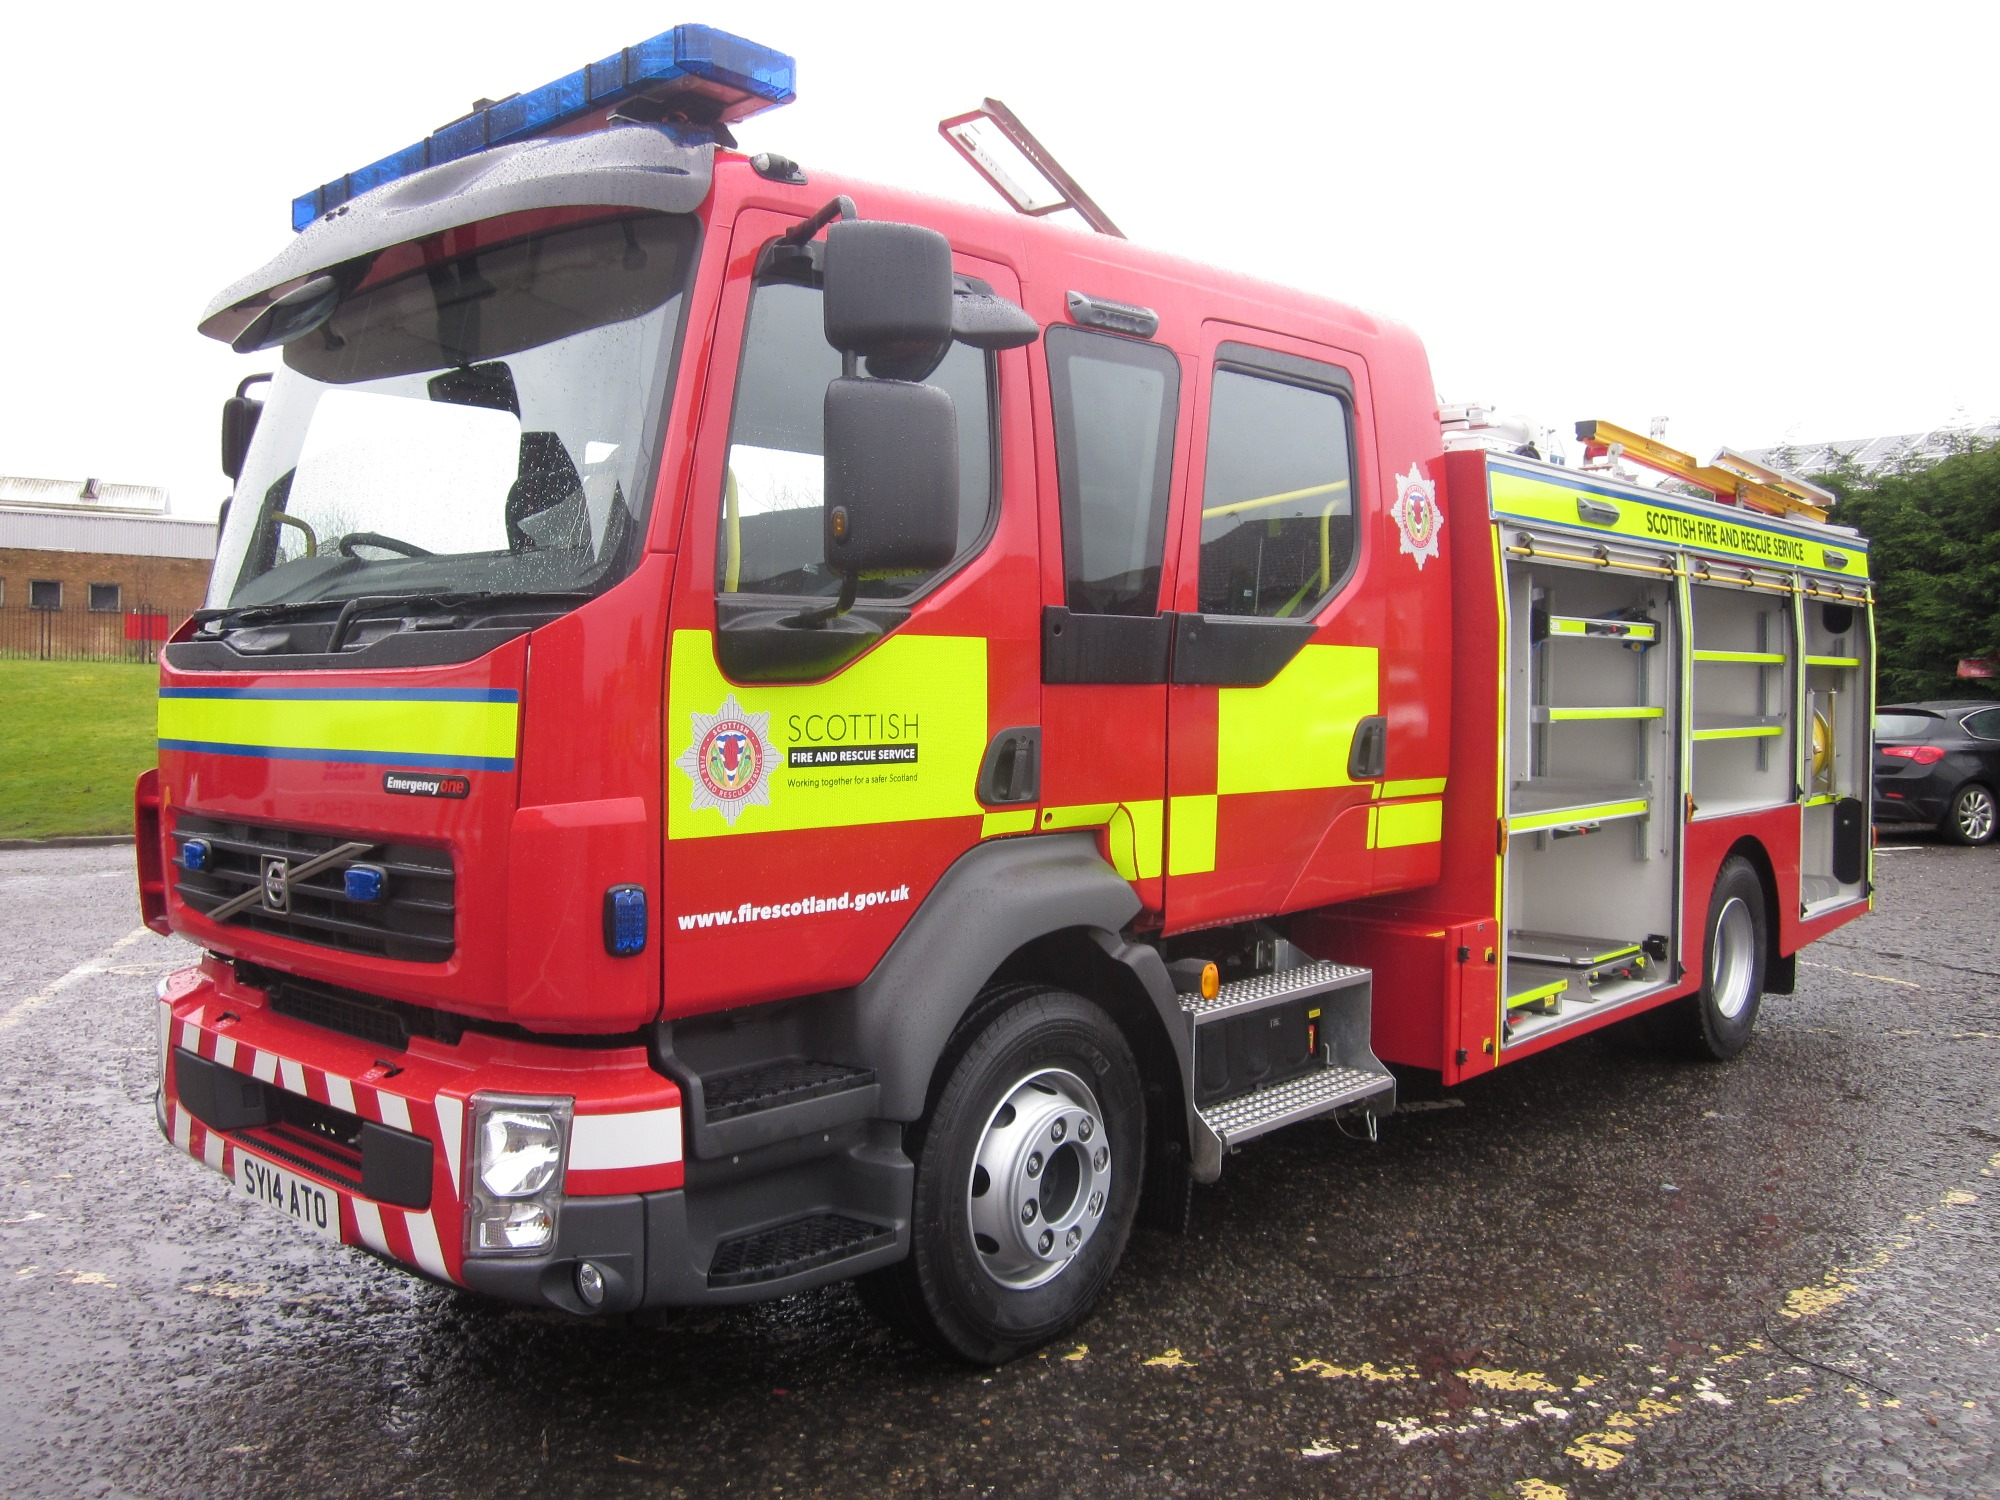 Latest SFRS report highlights reduction of fire risk in Aberdeen